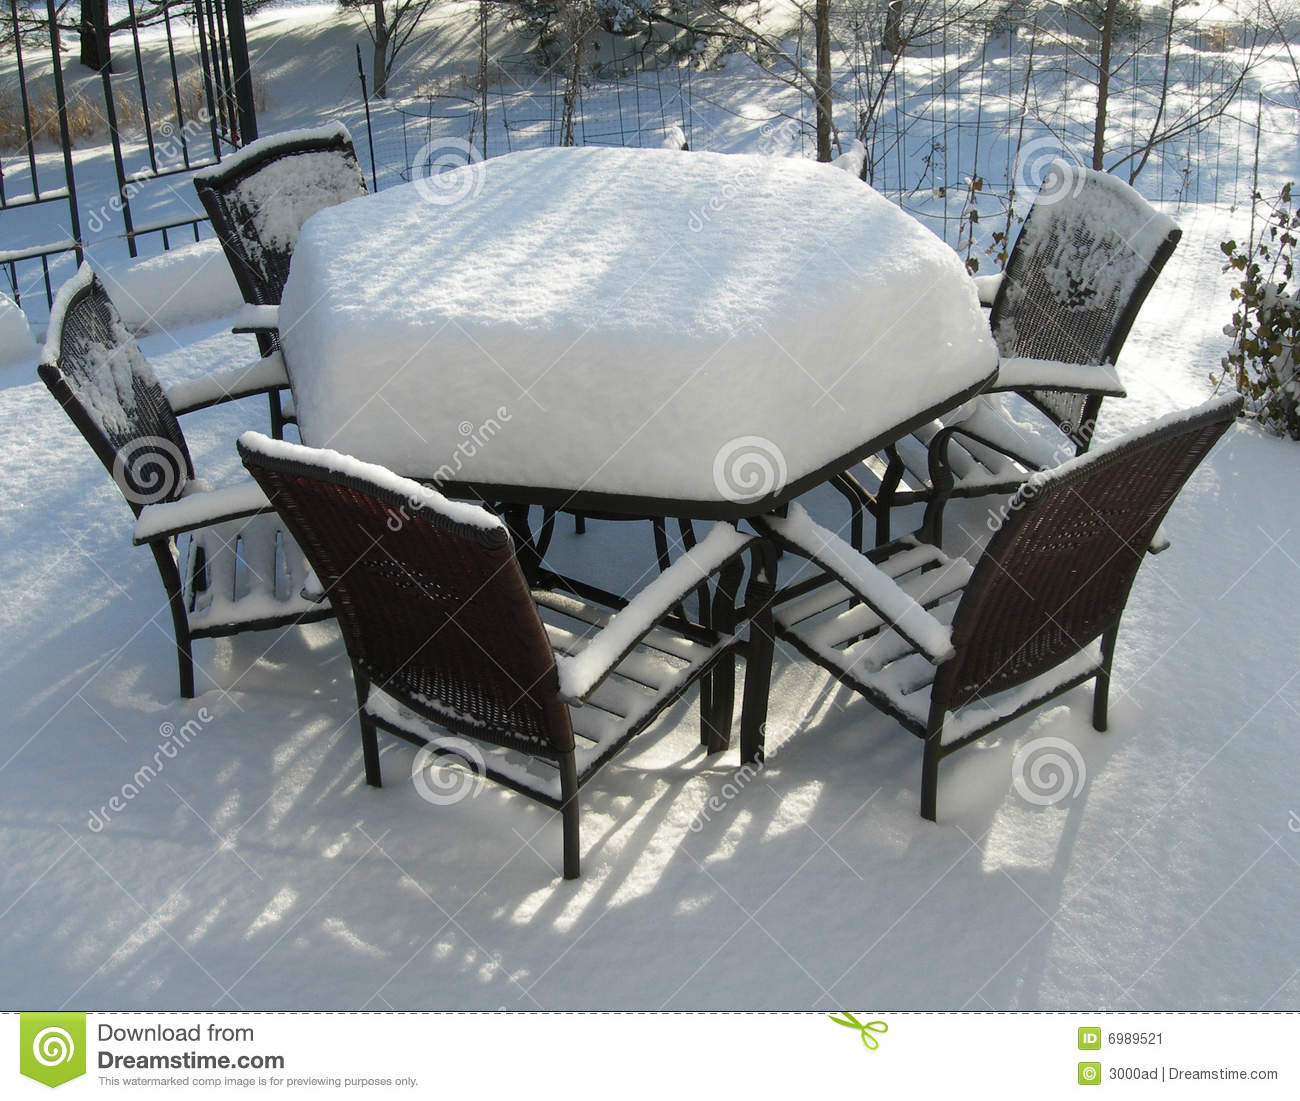 Miraculous Patio Furniture In Winter Stock Image Image Of Cold Winter Download Free Architecture Designs Embacsunscenecom